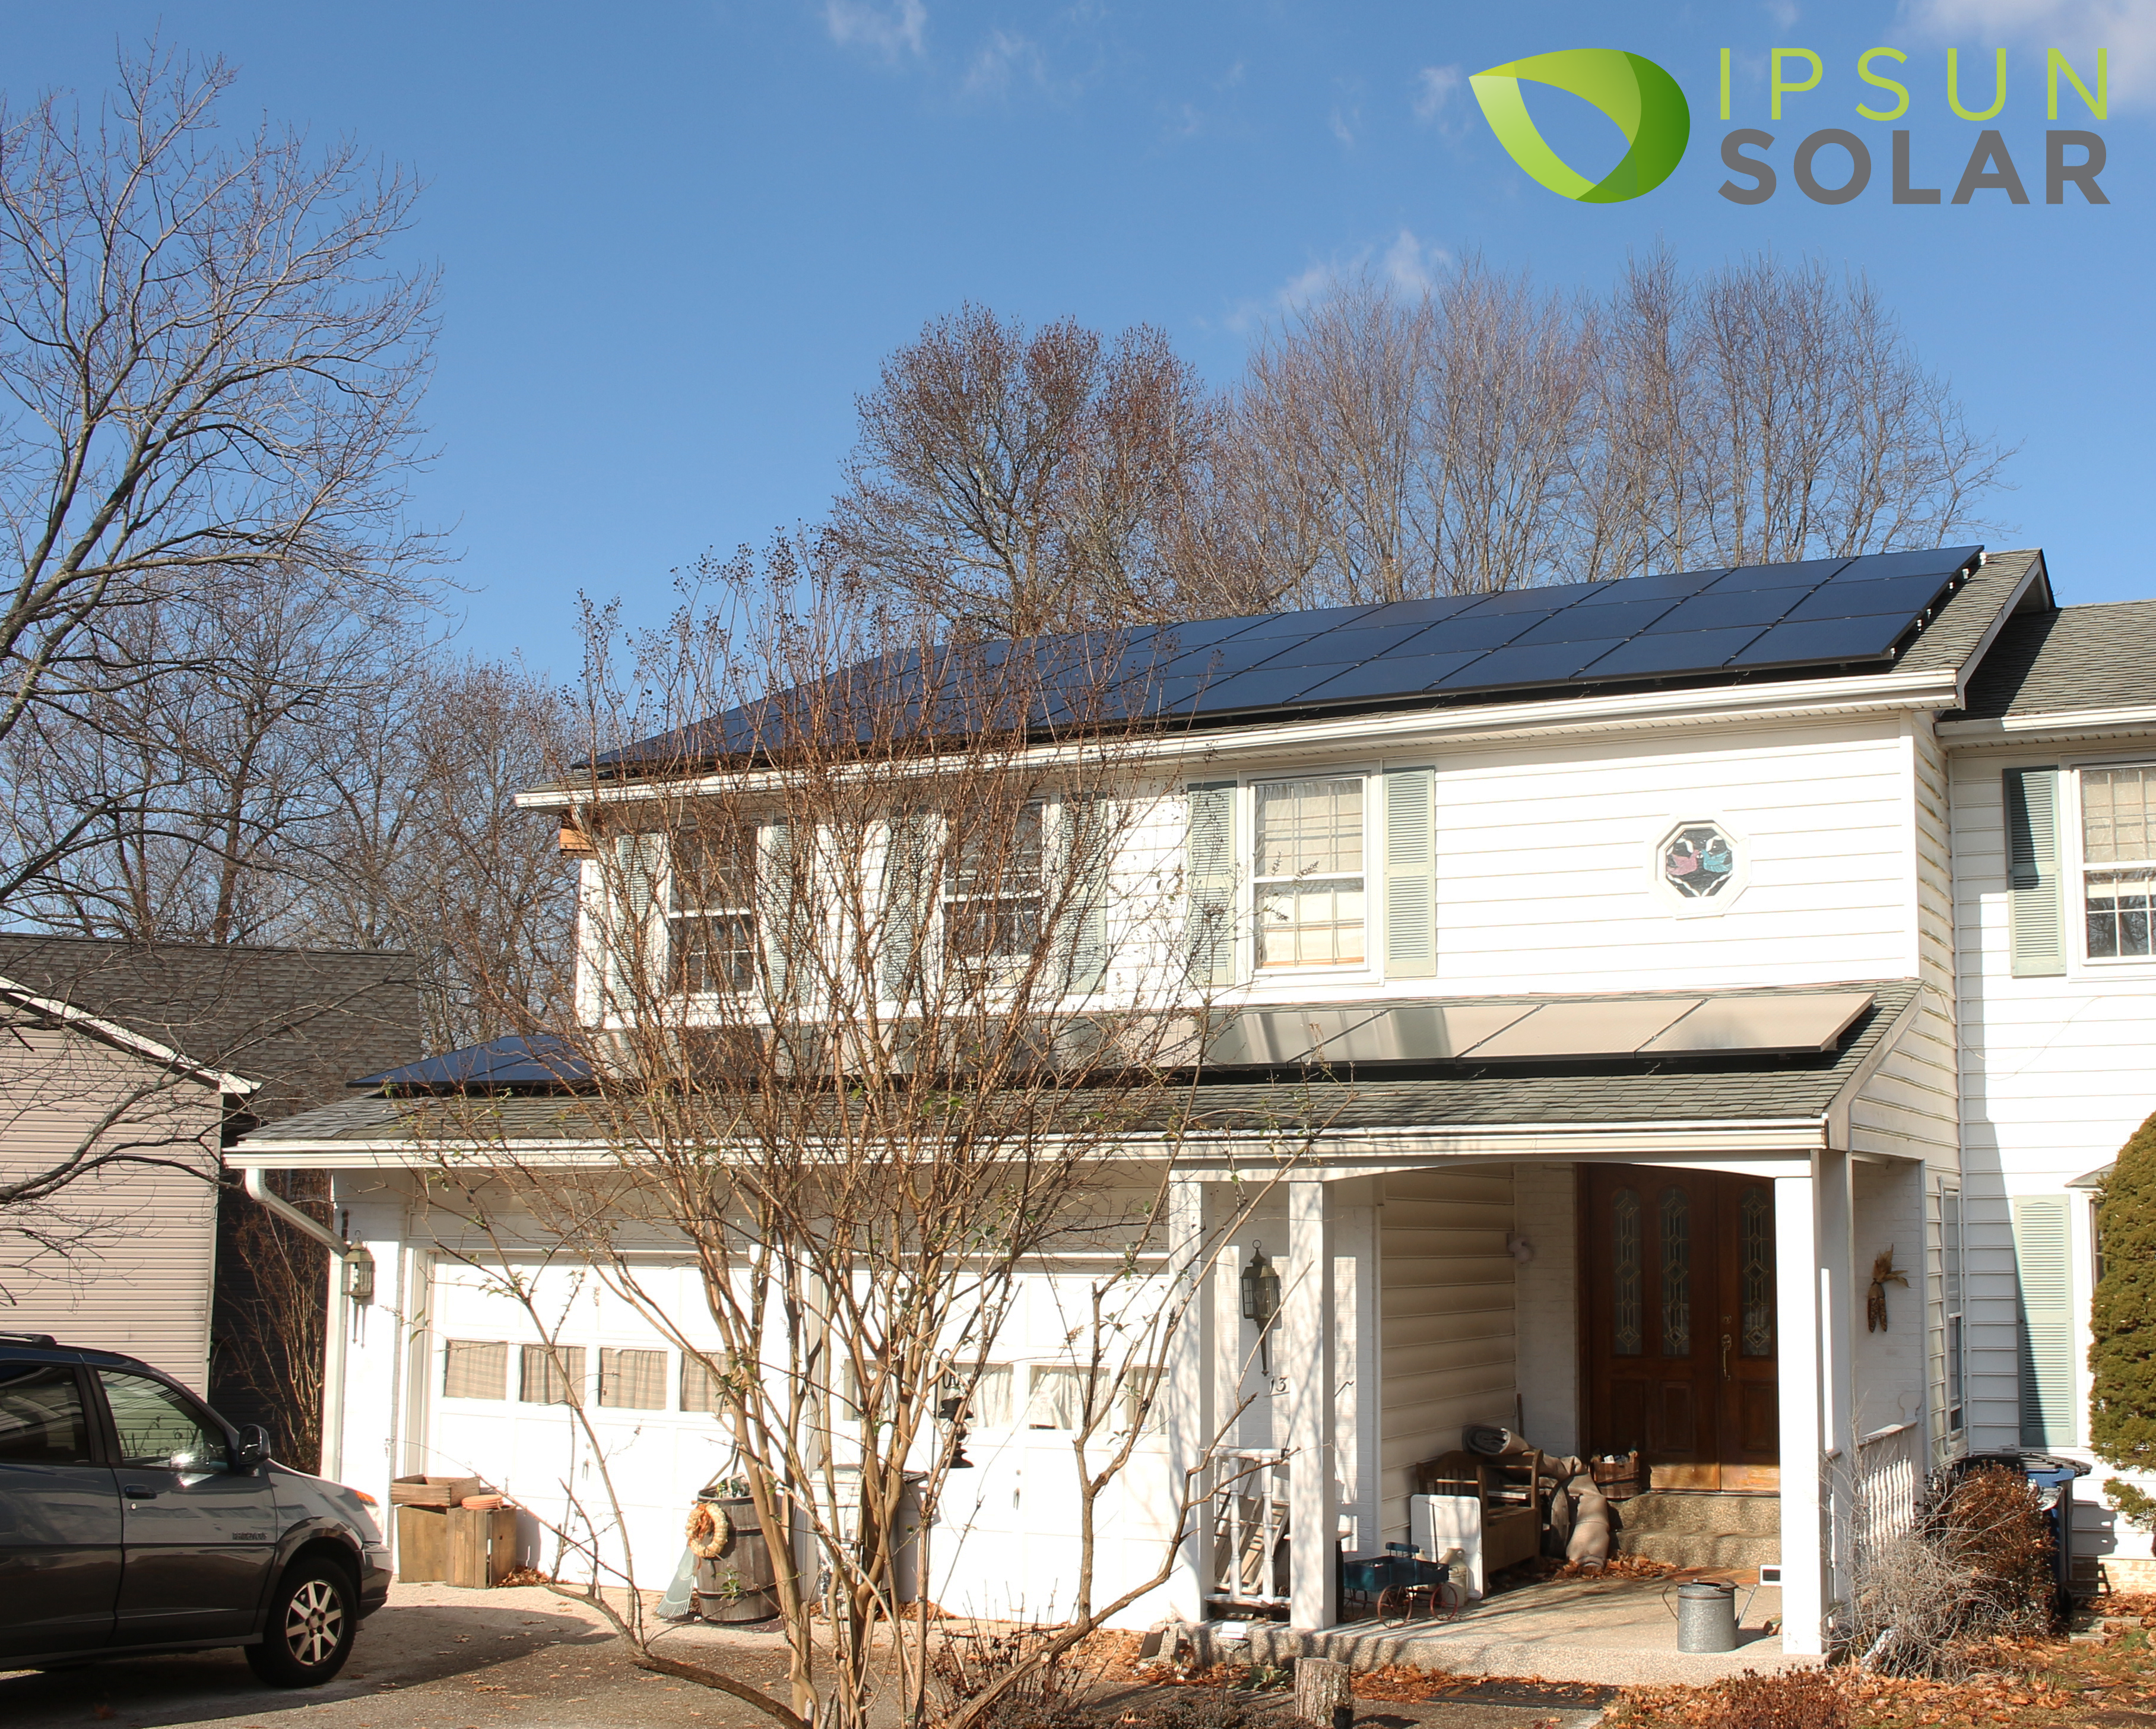 Every solar installation helps the climate